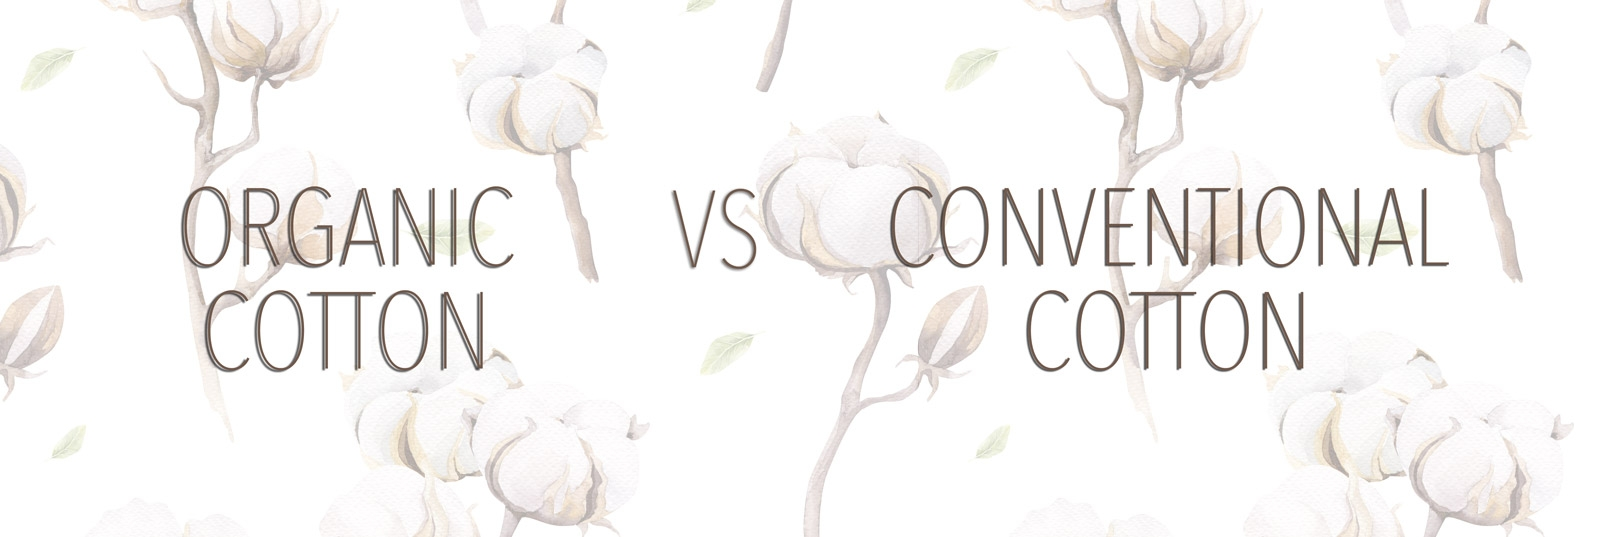 Organic Cotton Better than Conventional Cotton